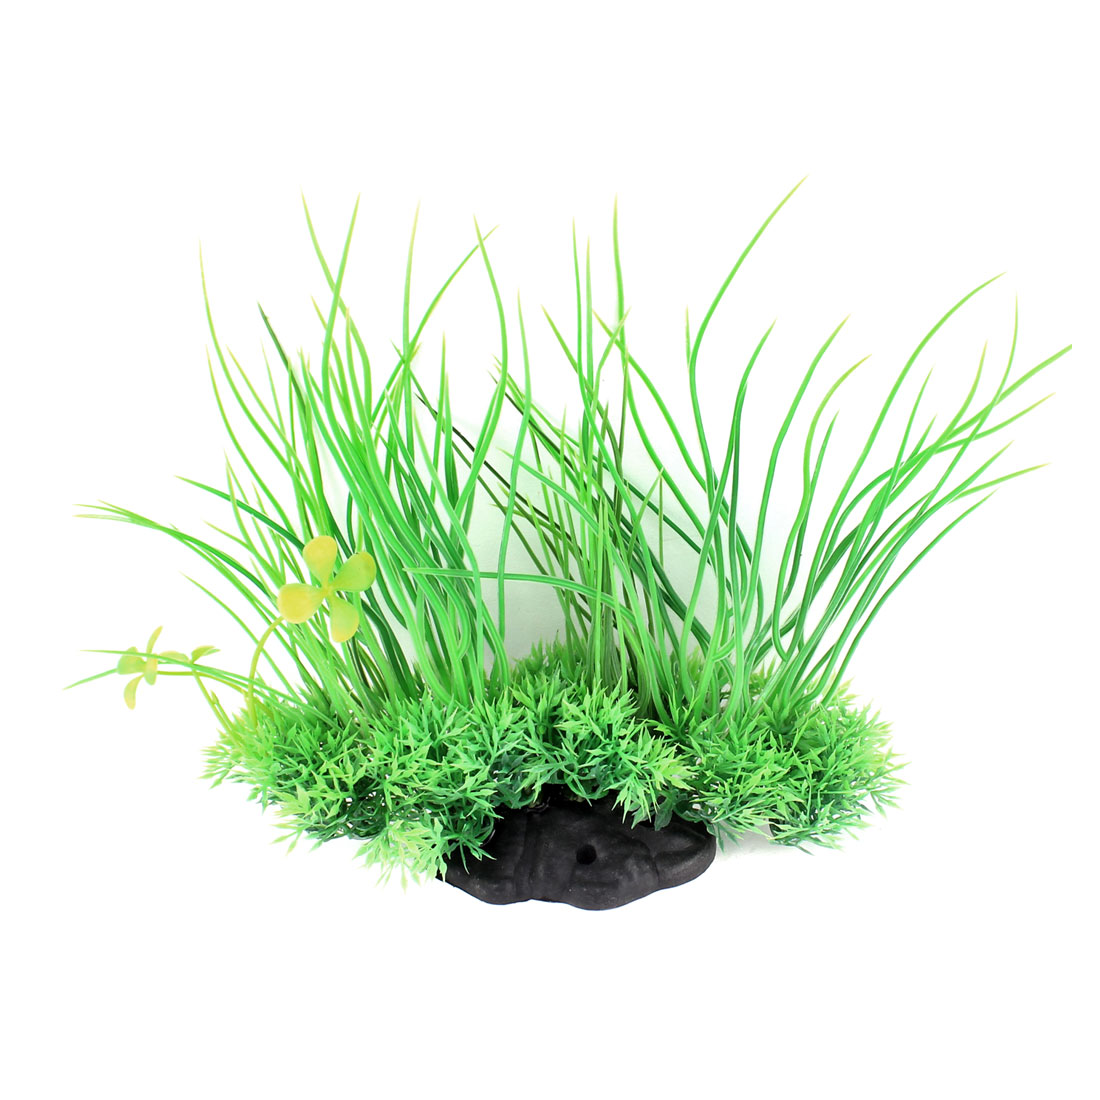 18cm Height Green Plastic Artificial Aquarium Plant Underwater Grass Ornament